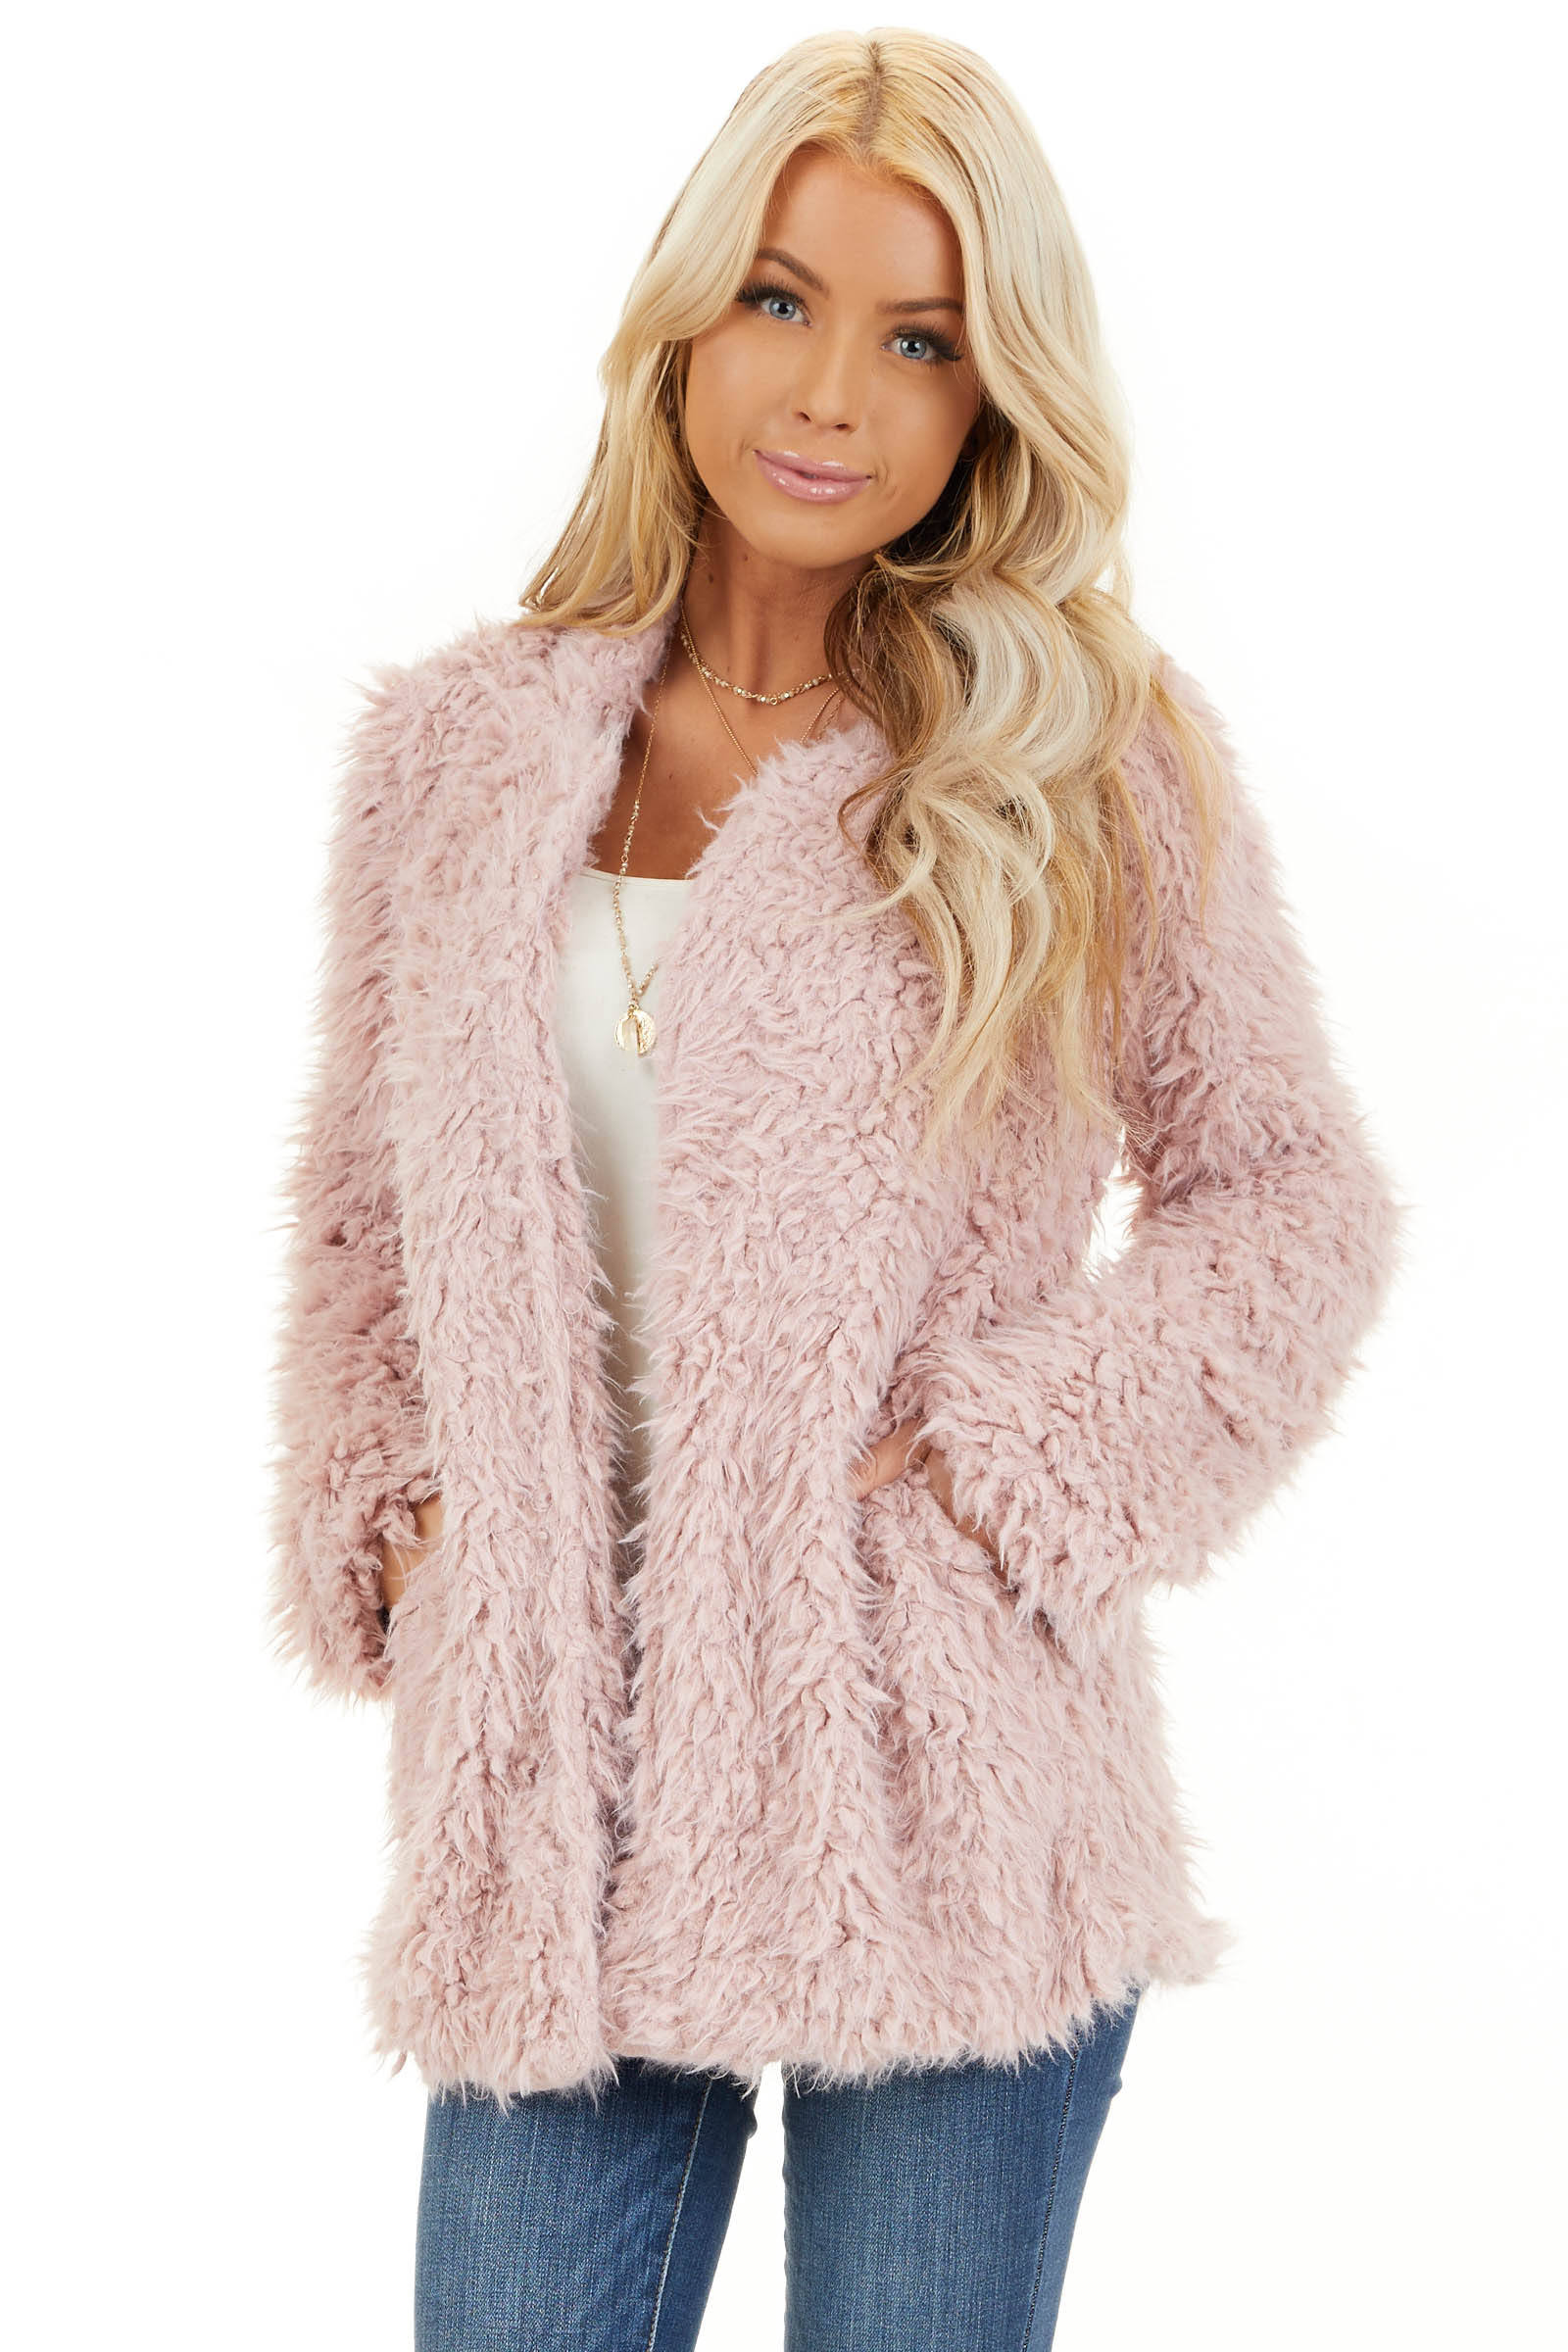 Blush Faux Fur Long Sleeve Cardigan with Side Pockets front close up